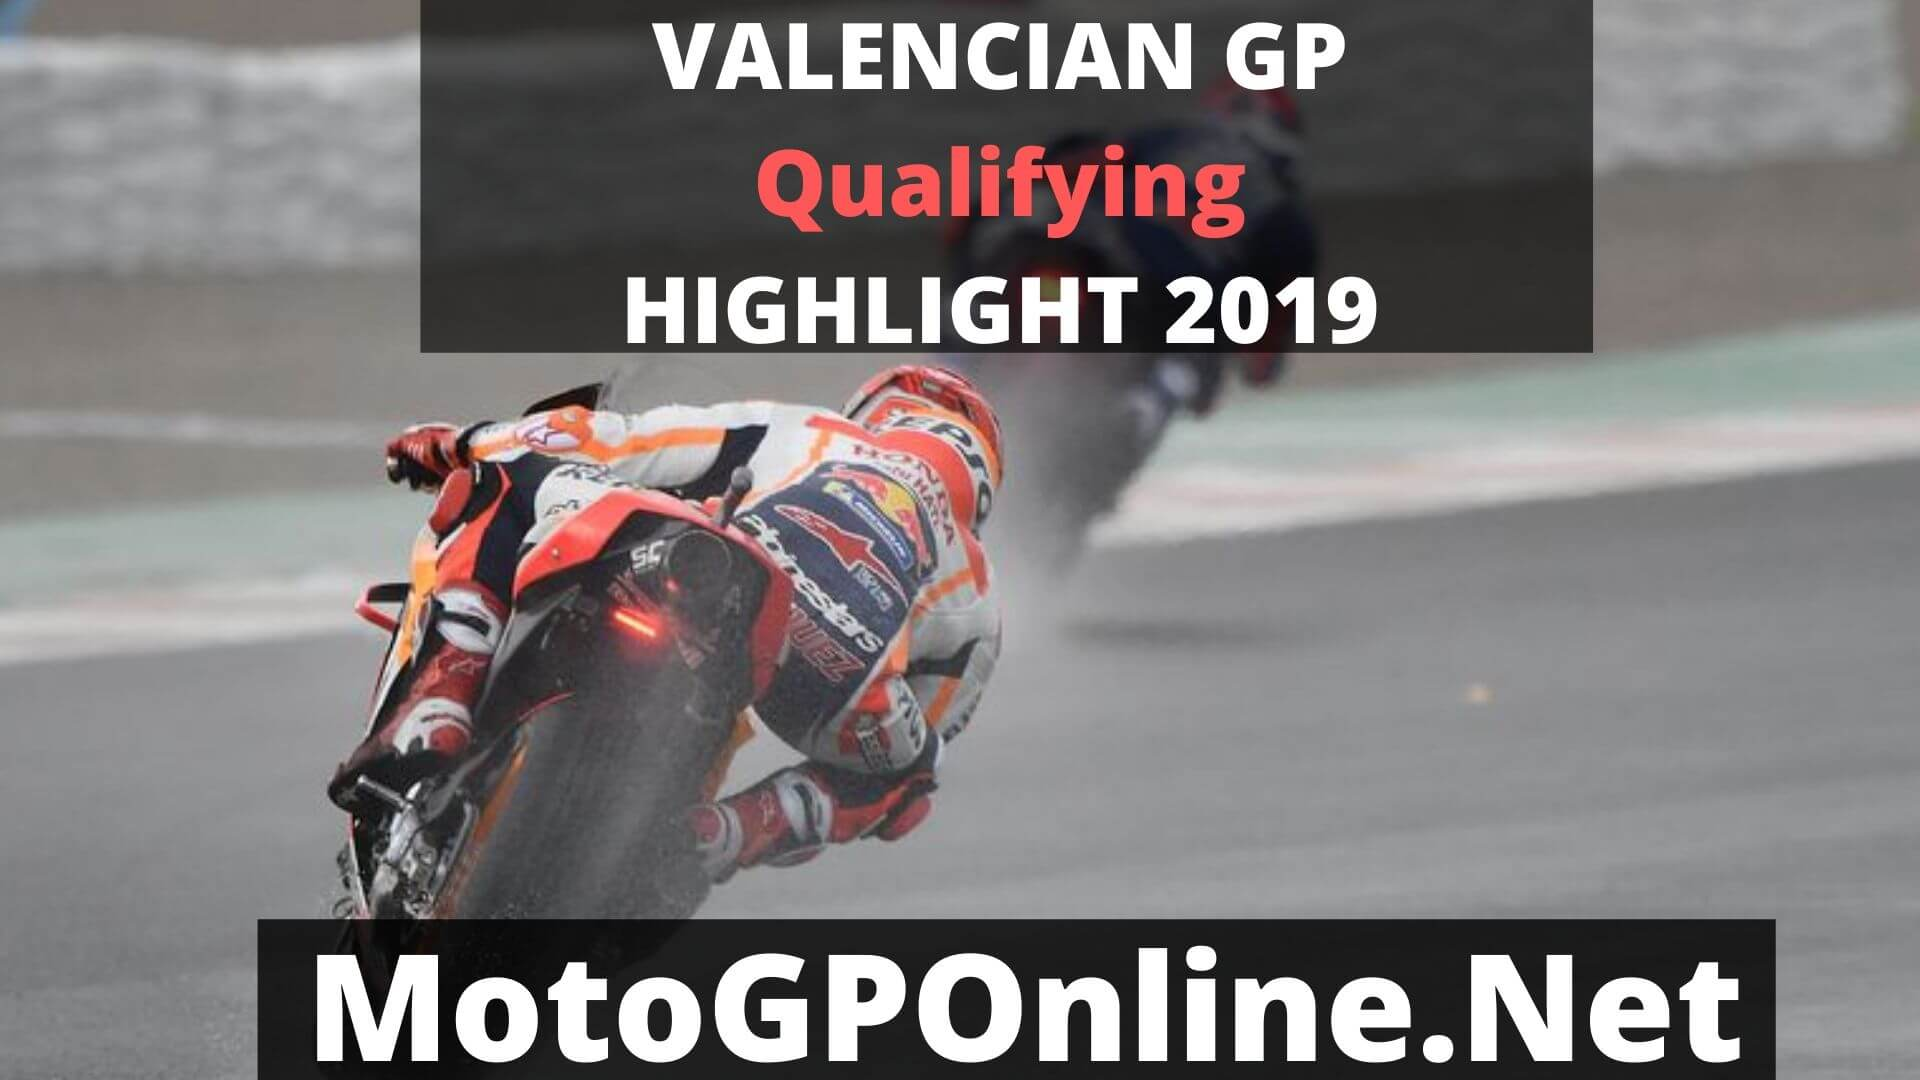 MotoGP Valencian GP Qualifying GP Race Highlights 2019